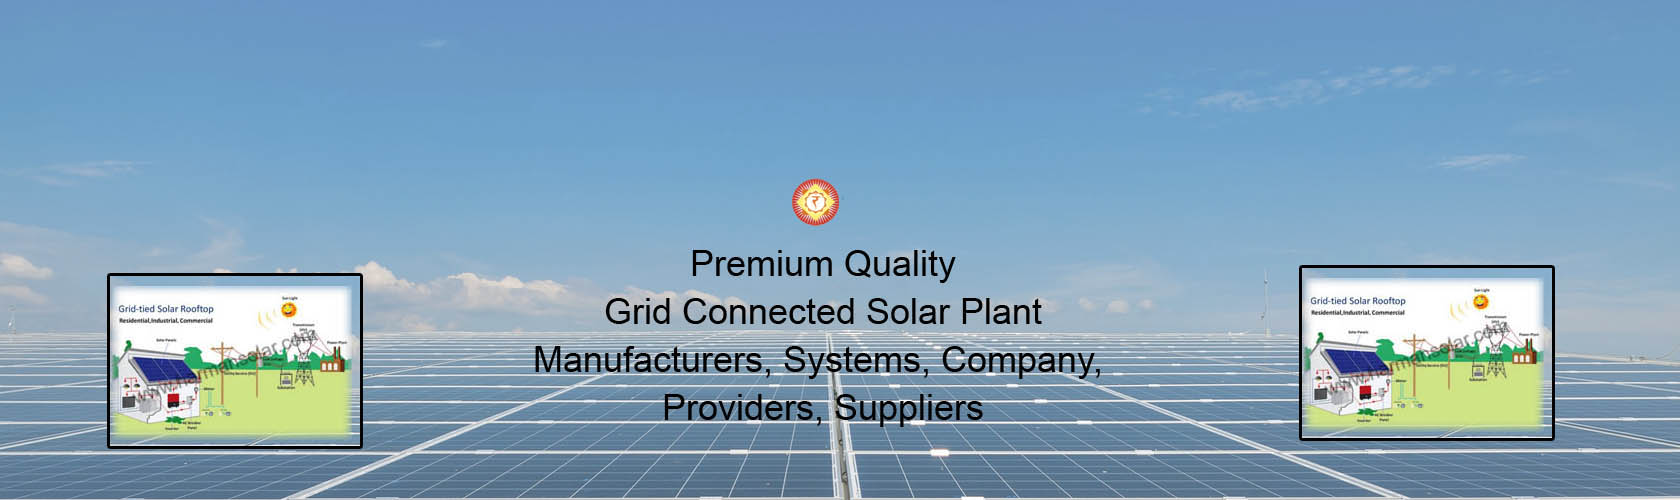 Grid Connected Solar Plant